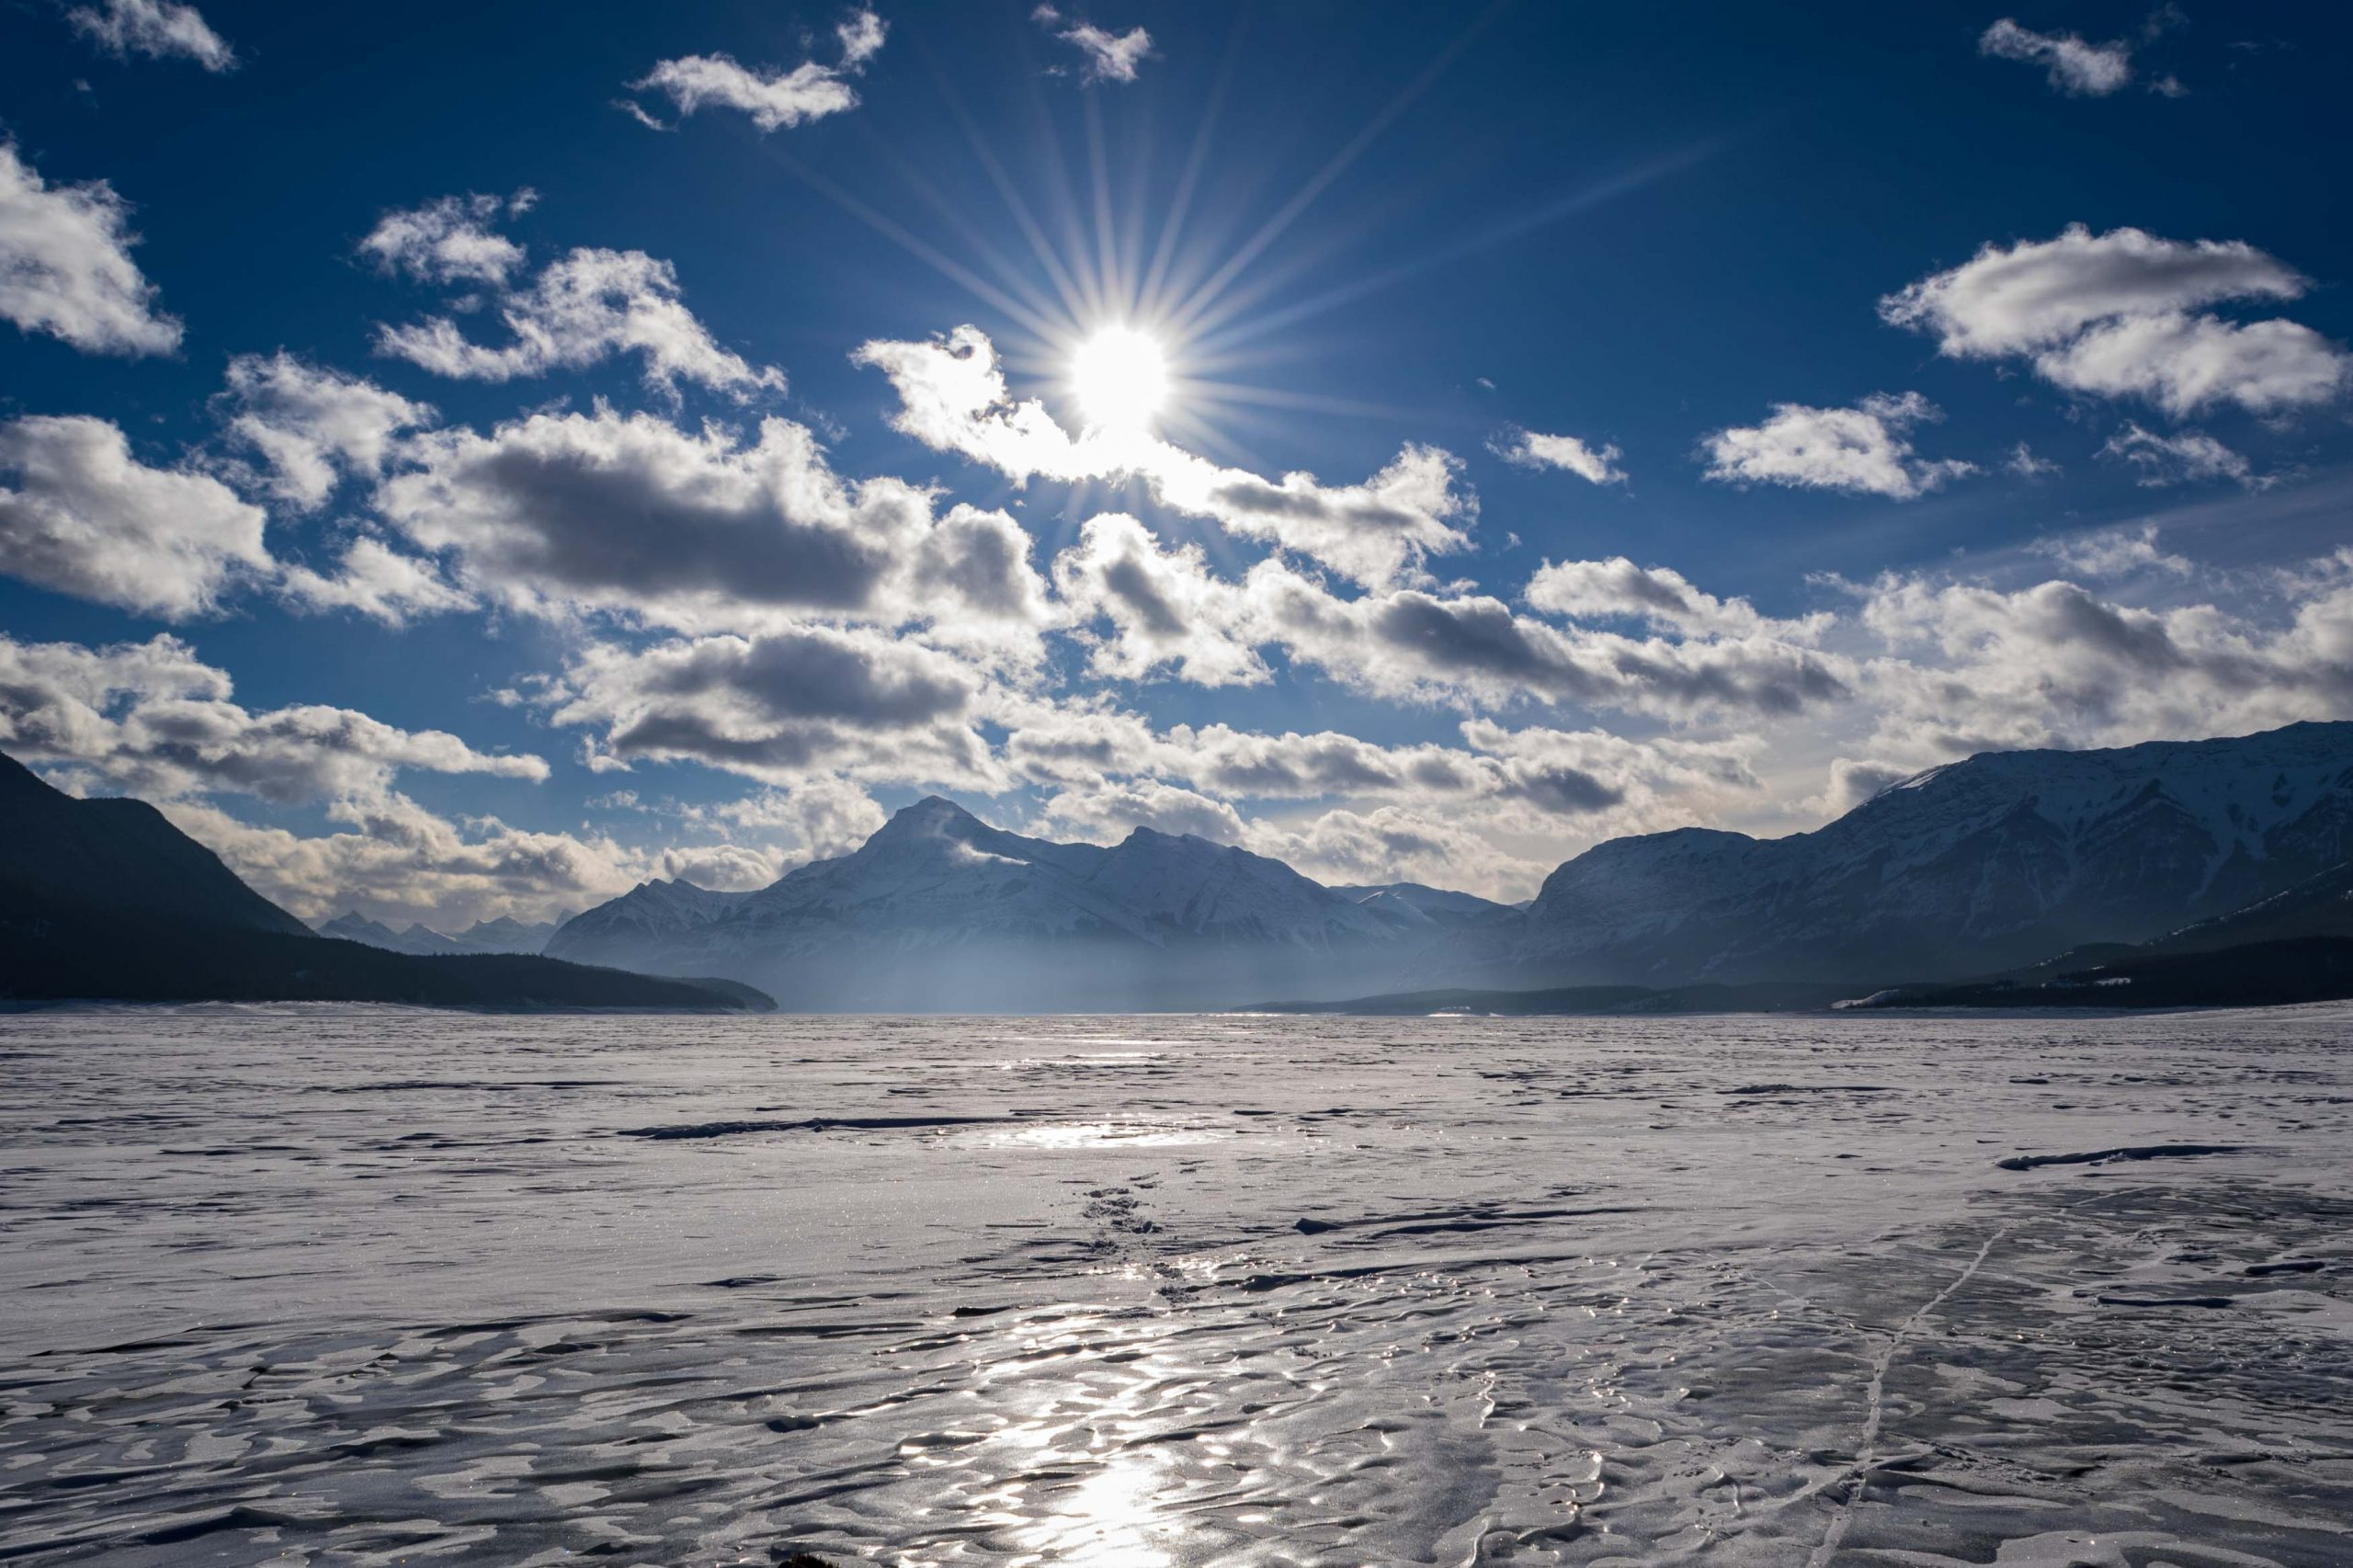 Abraham Lake Ice Conditions – February 3, 2021